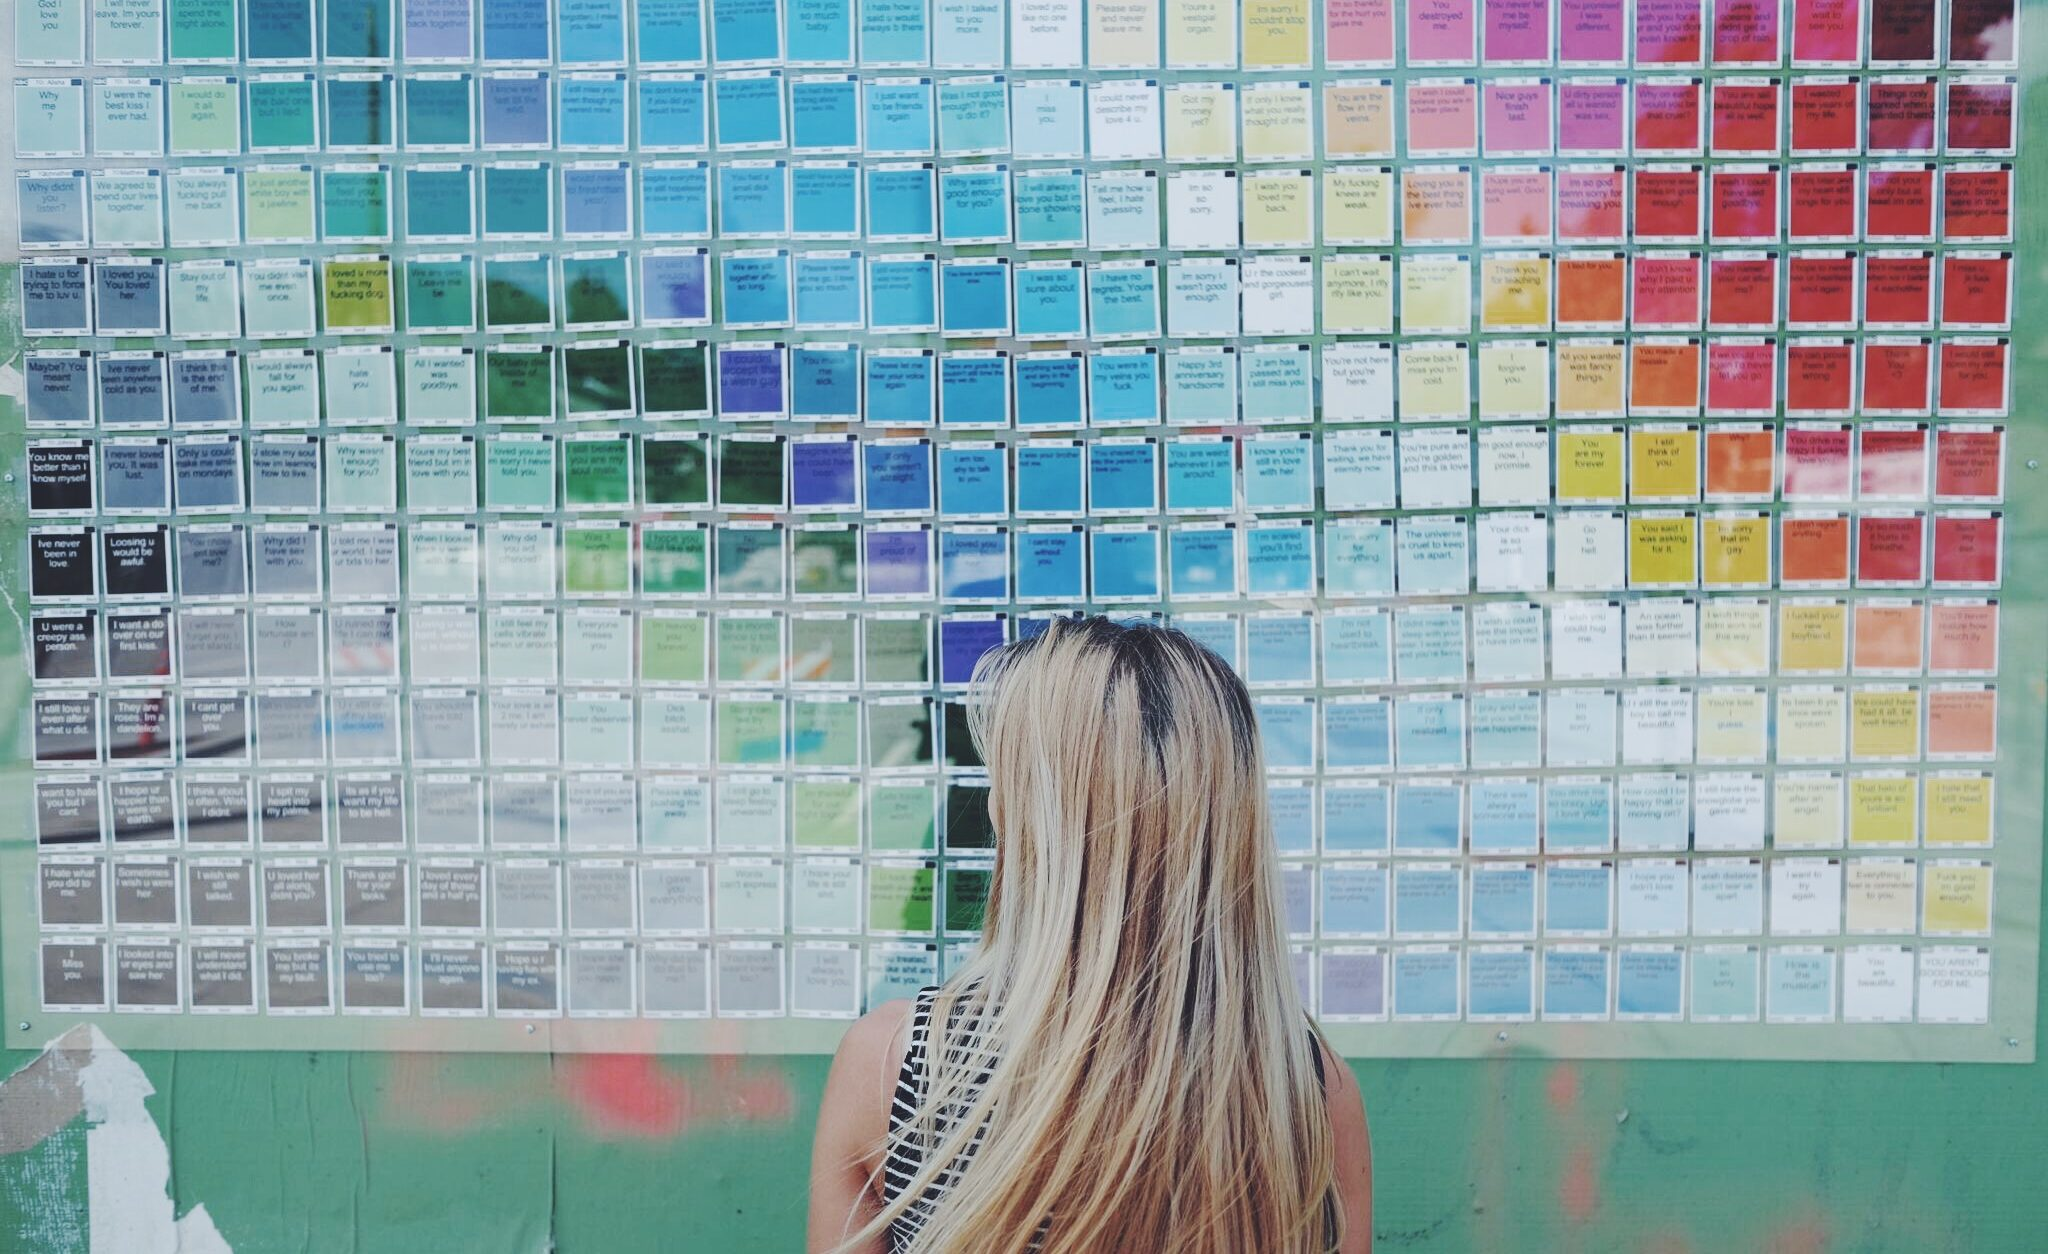 artist looking at installed art piece with colorful tiles